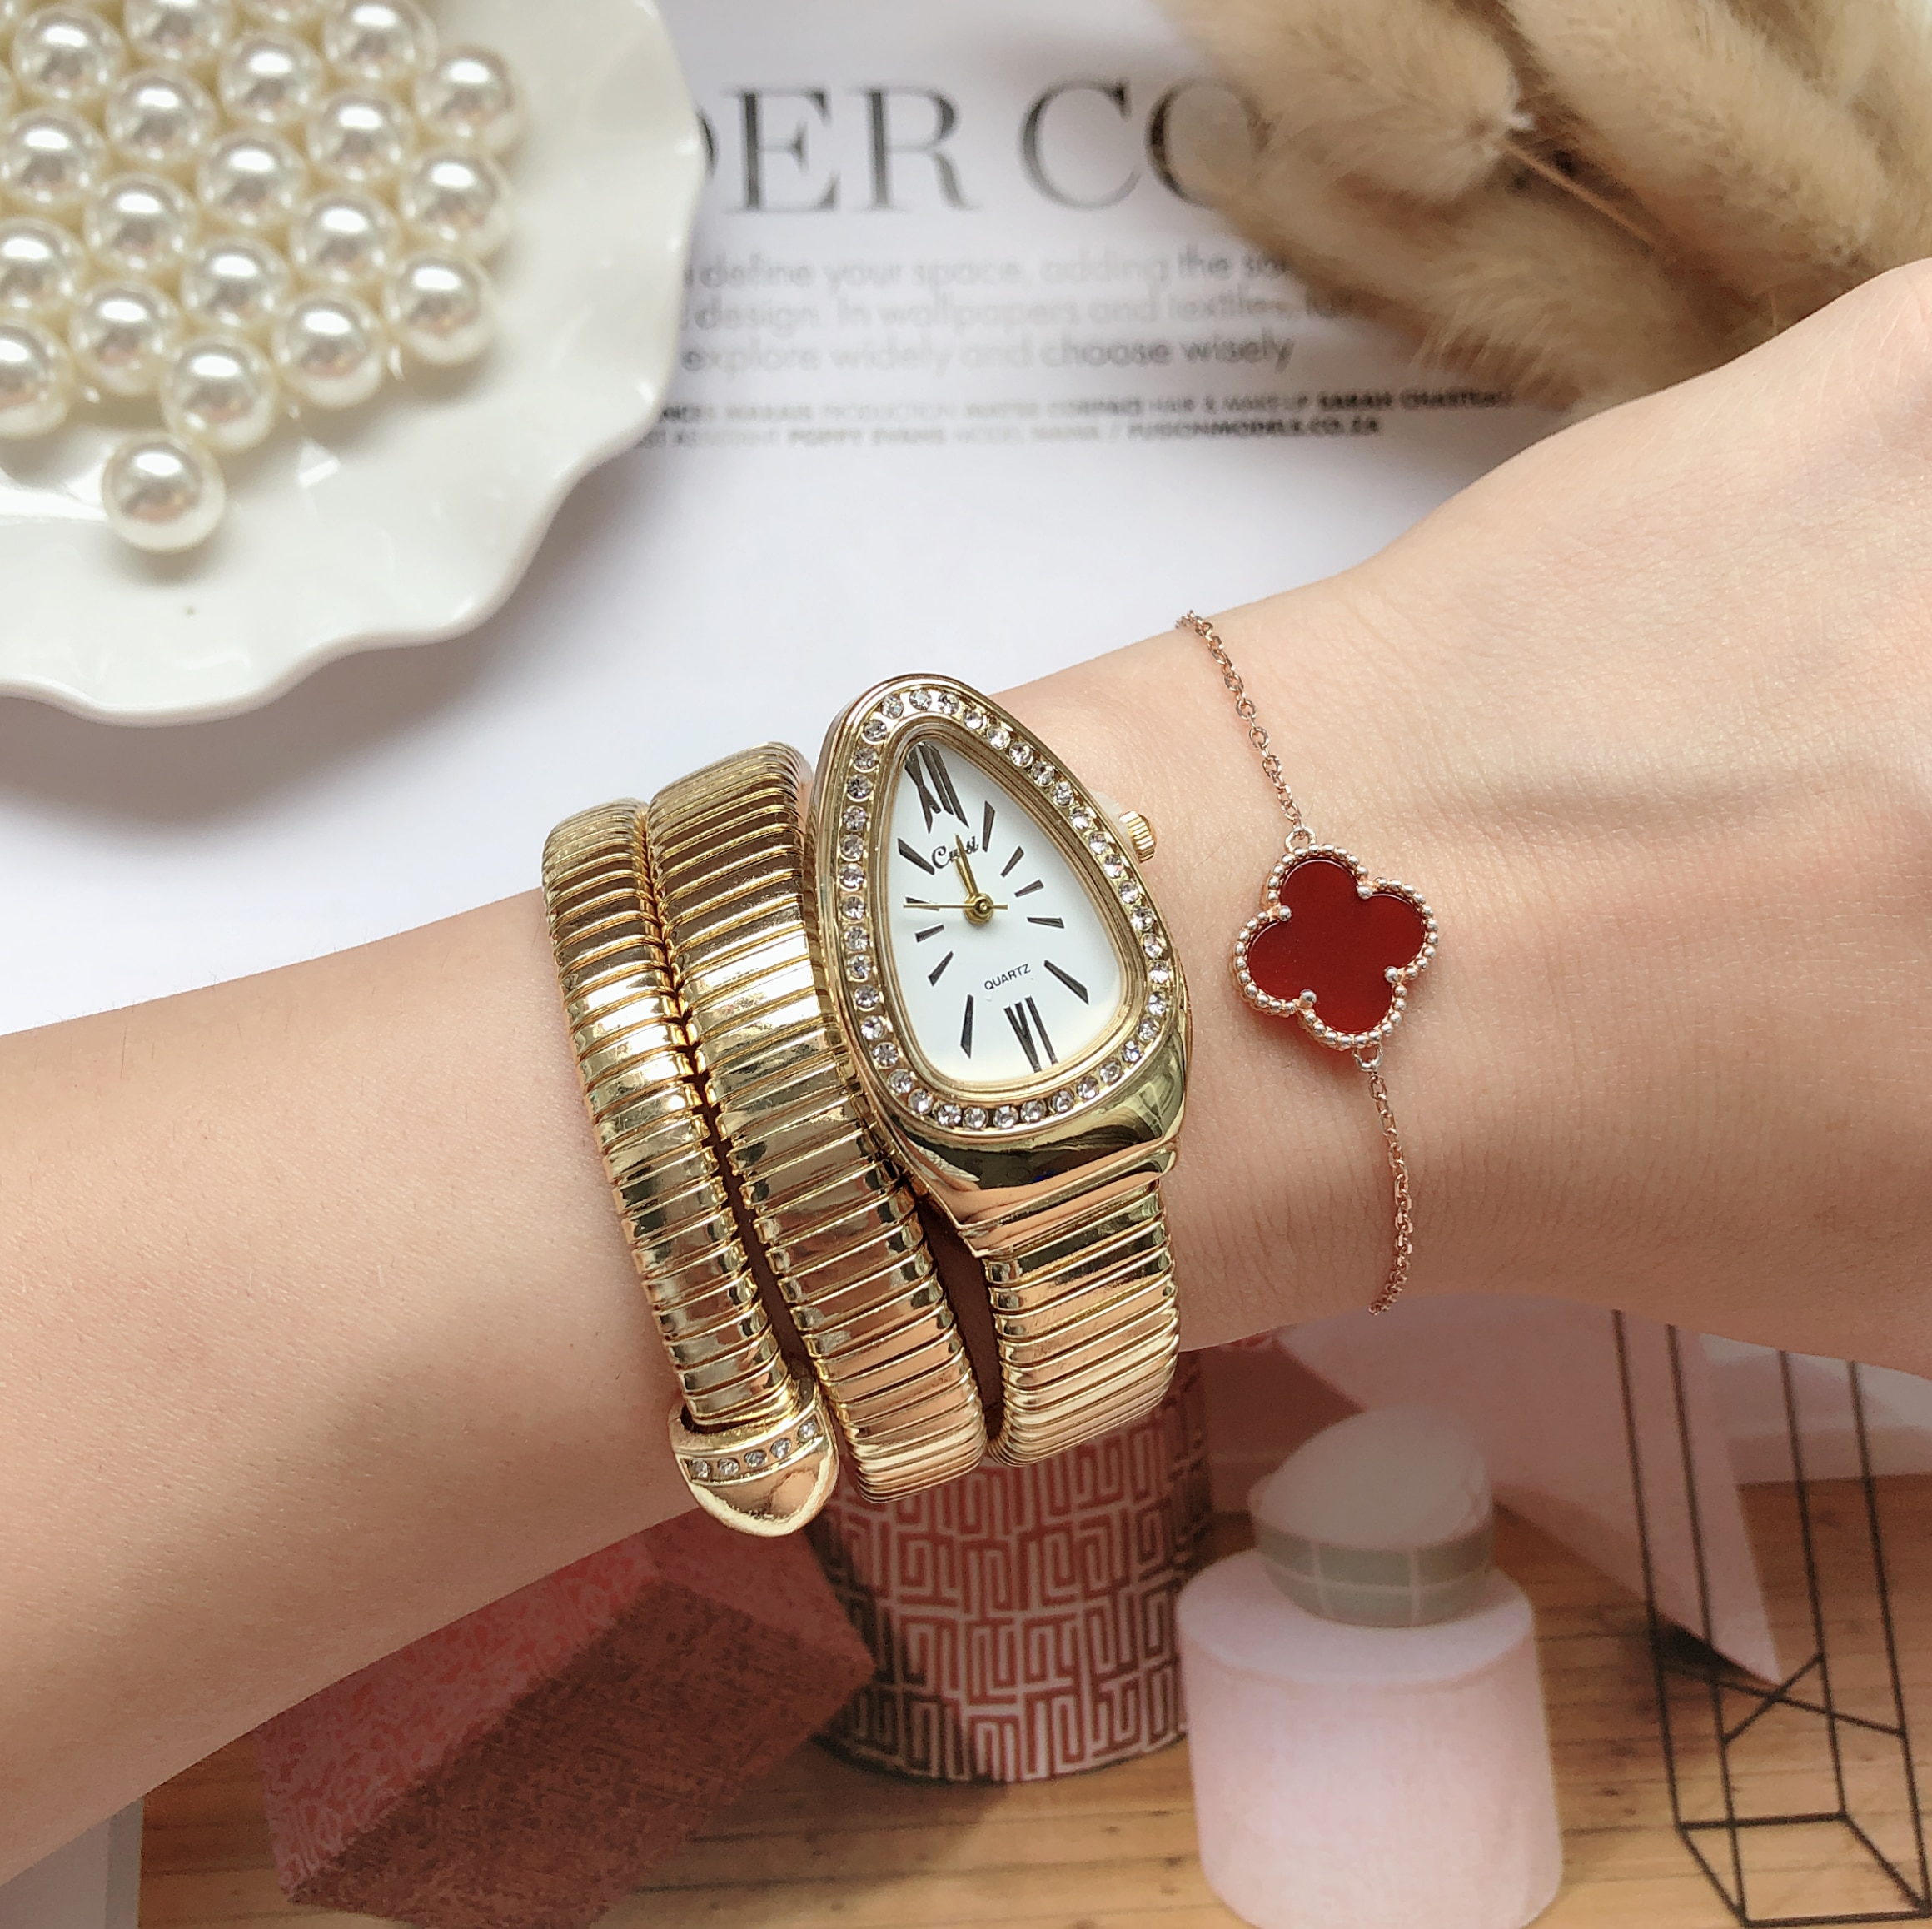 New Women Luxury Brand Watch Snake Quartz Ladies Gold Watch Diamond Wristwatch Female Fashion Bracelet Watches Clock reloj mujer hannah martin wristwatch women watches luxury brand quartz steel strap female watch diamond ladies watch clock women reloj mujer